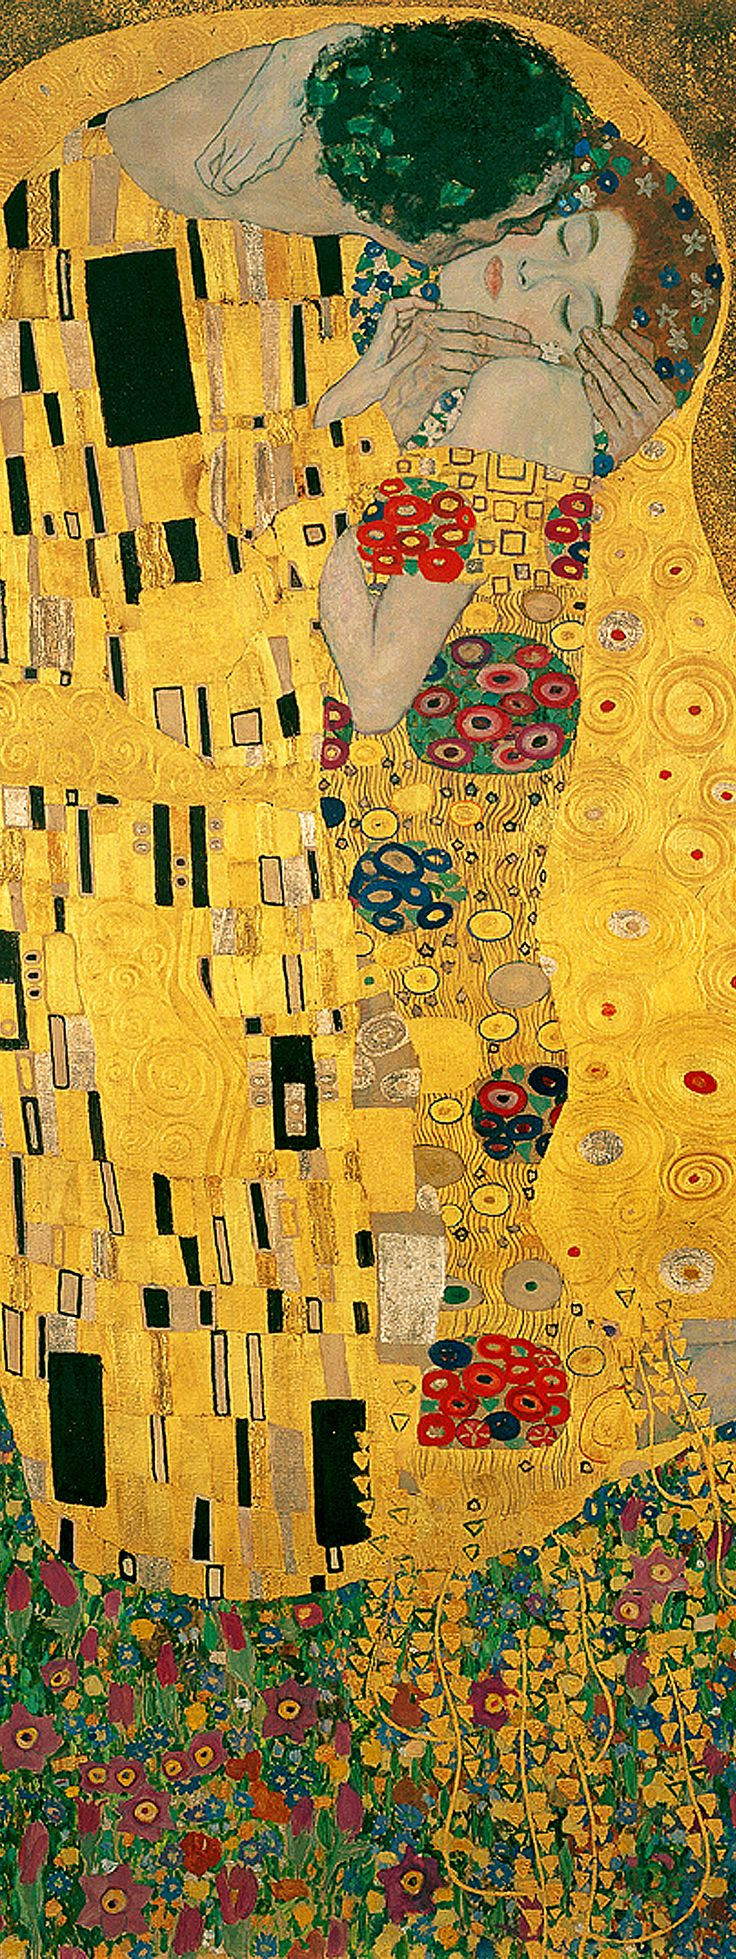 See Gustav Klimt's 'The Kiss' (1907-08) and his other famous paintings at the Österreichische Galerie Belvedere, Vienna